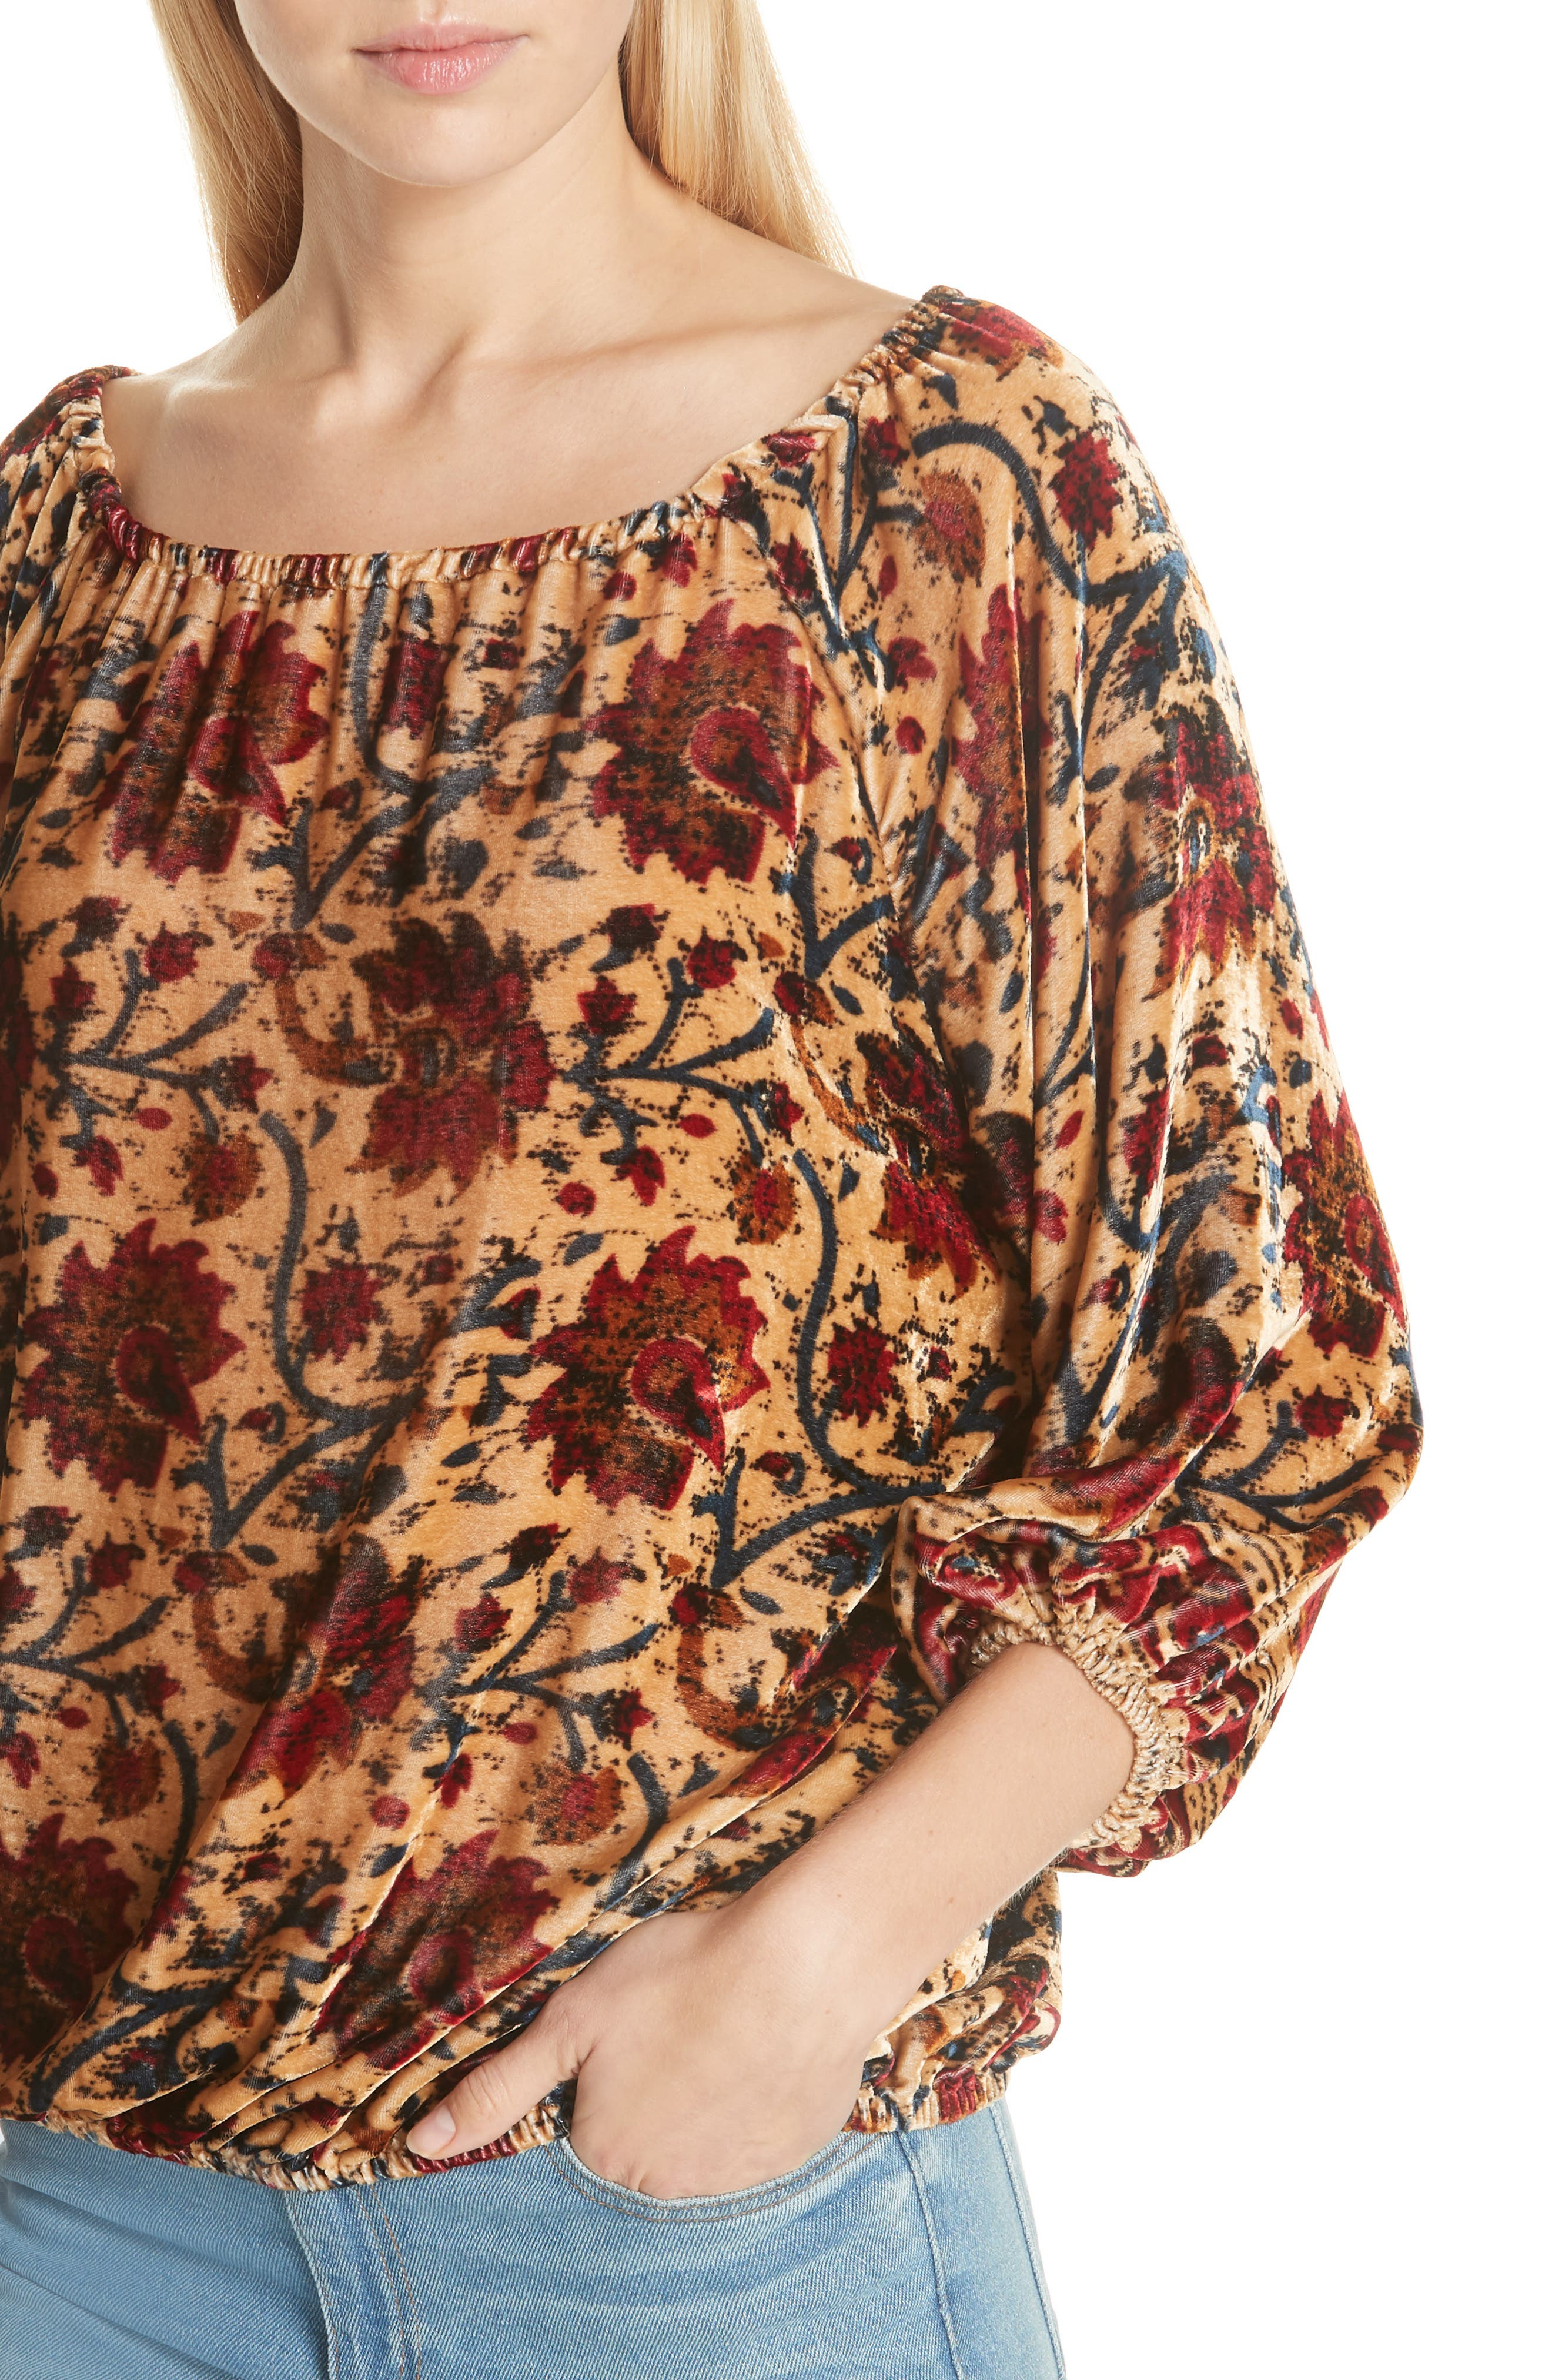 Cherie Velvet Blouse,                             Alternate thumbnail 4, color,                             FLORAL MULTI